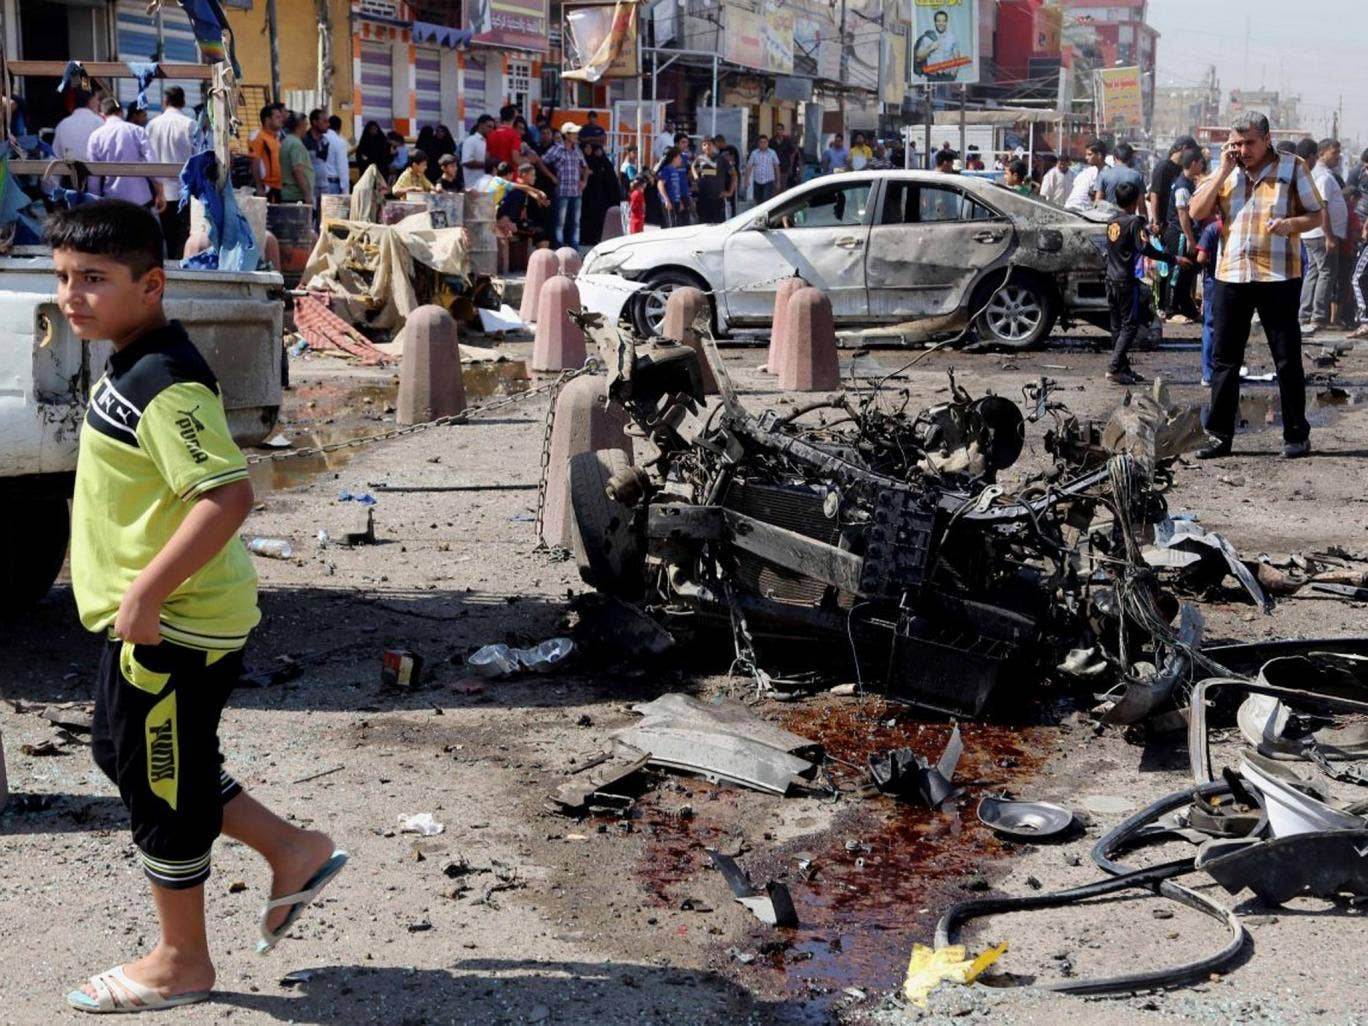 People inspect the site of a car bomb attack in Sadr City, Baghdad, as a co-ordinated wave of bombings tore through Shia Muslim areas in and around the Iraqi capital